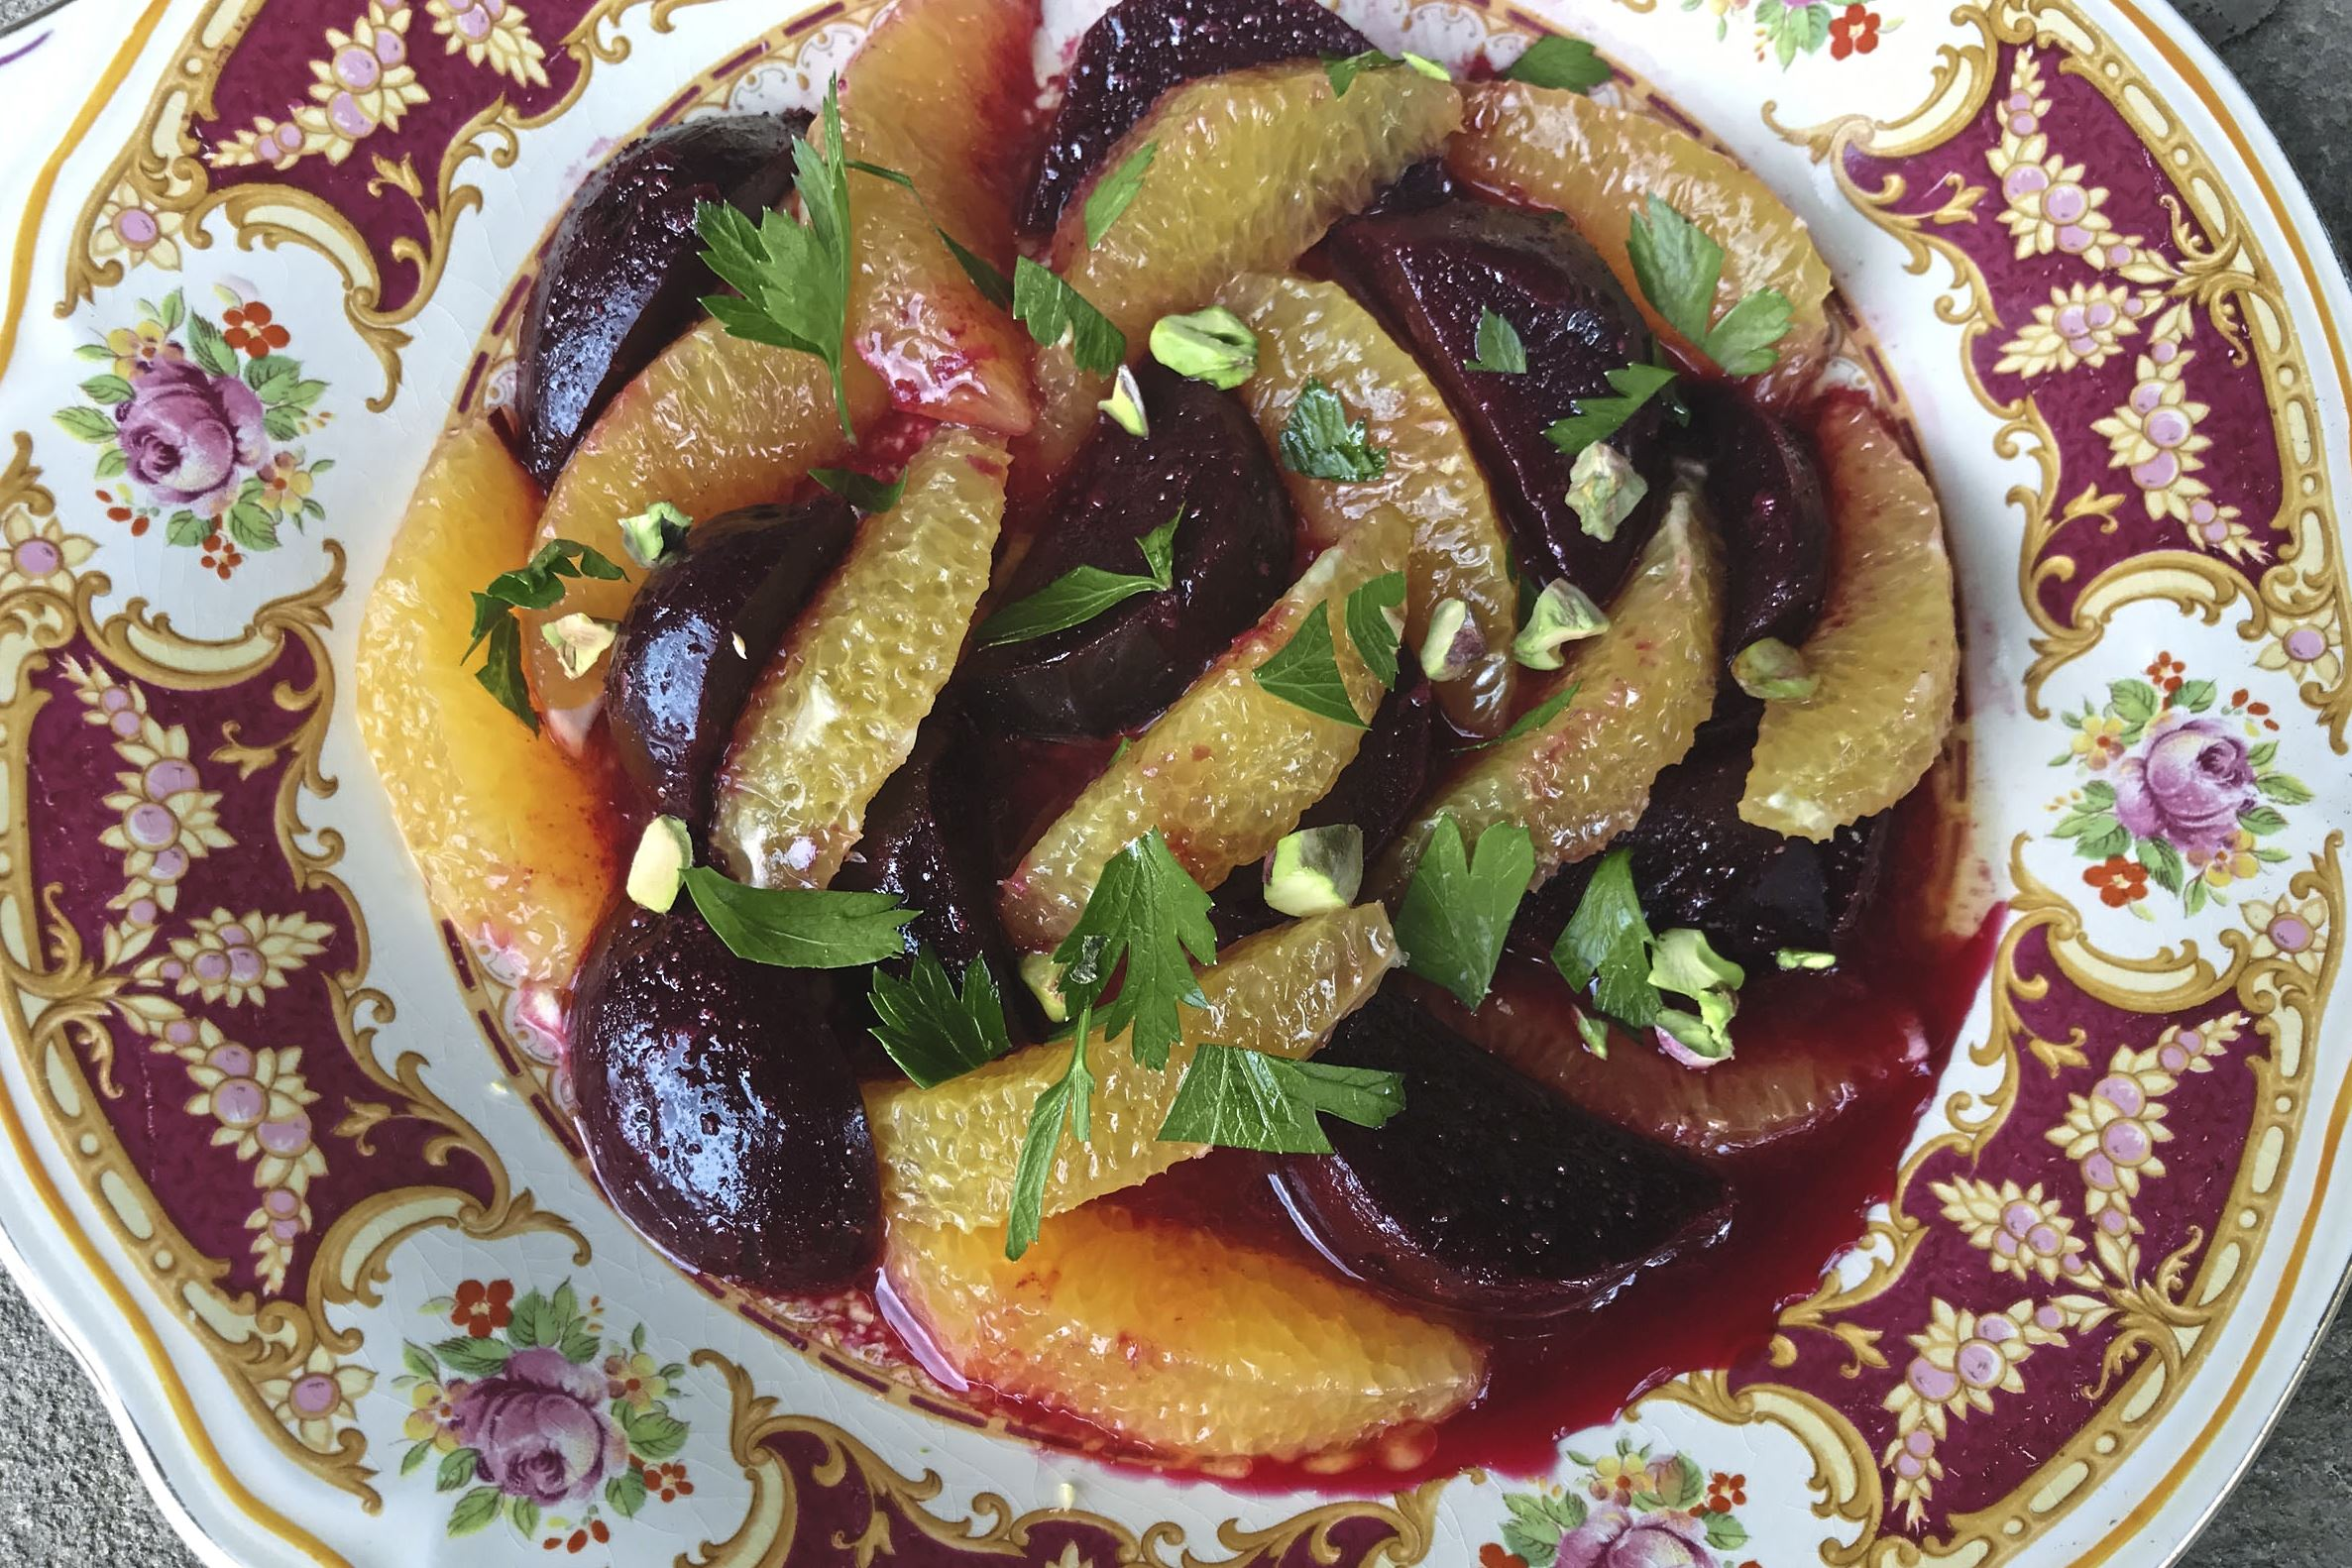 roshhasna093 beet orange 1-3 In the Moroccan Beet and Orange Salad, earthy sweet beets are combined with juicy oranges, and their flavors are accented with cumin and garlic.